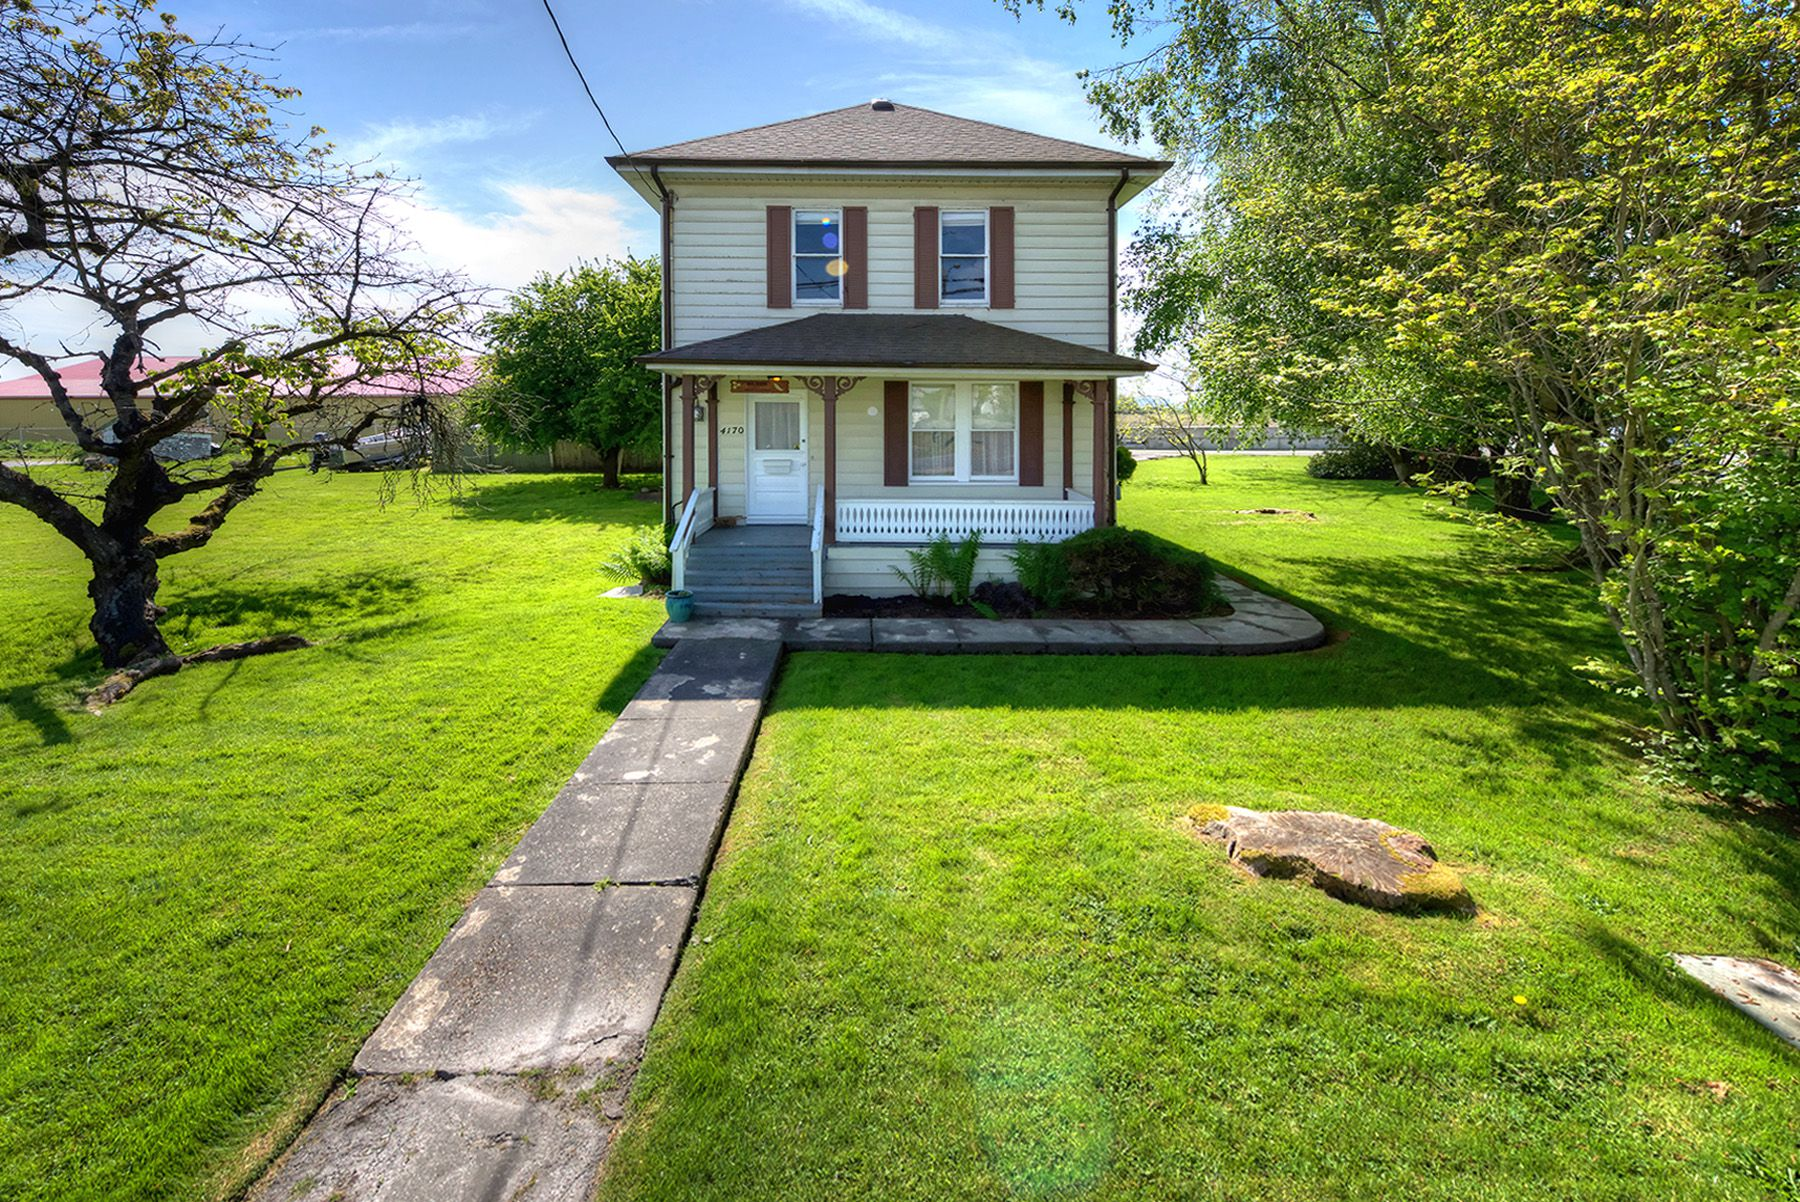 Main Photo: 4170 W RIVER Road in Delta: Port Guichon House for sale (Ladner)  : MLS®# R2266825